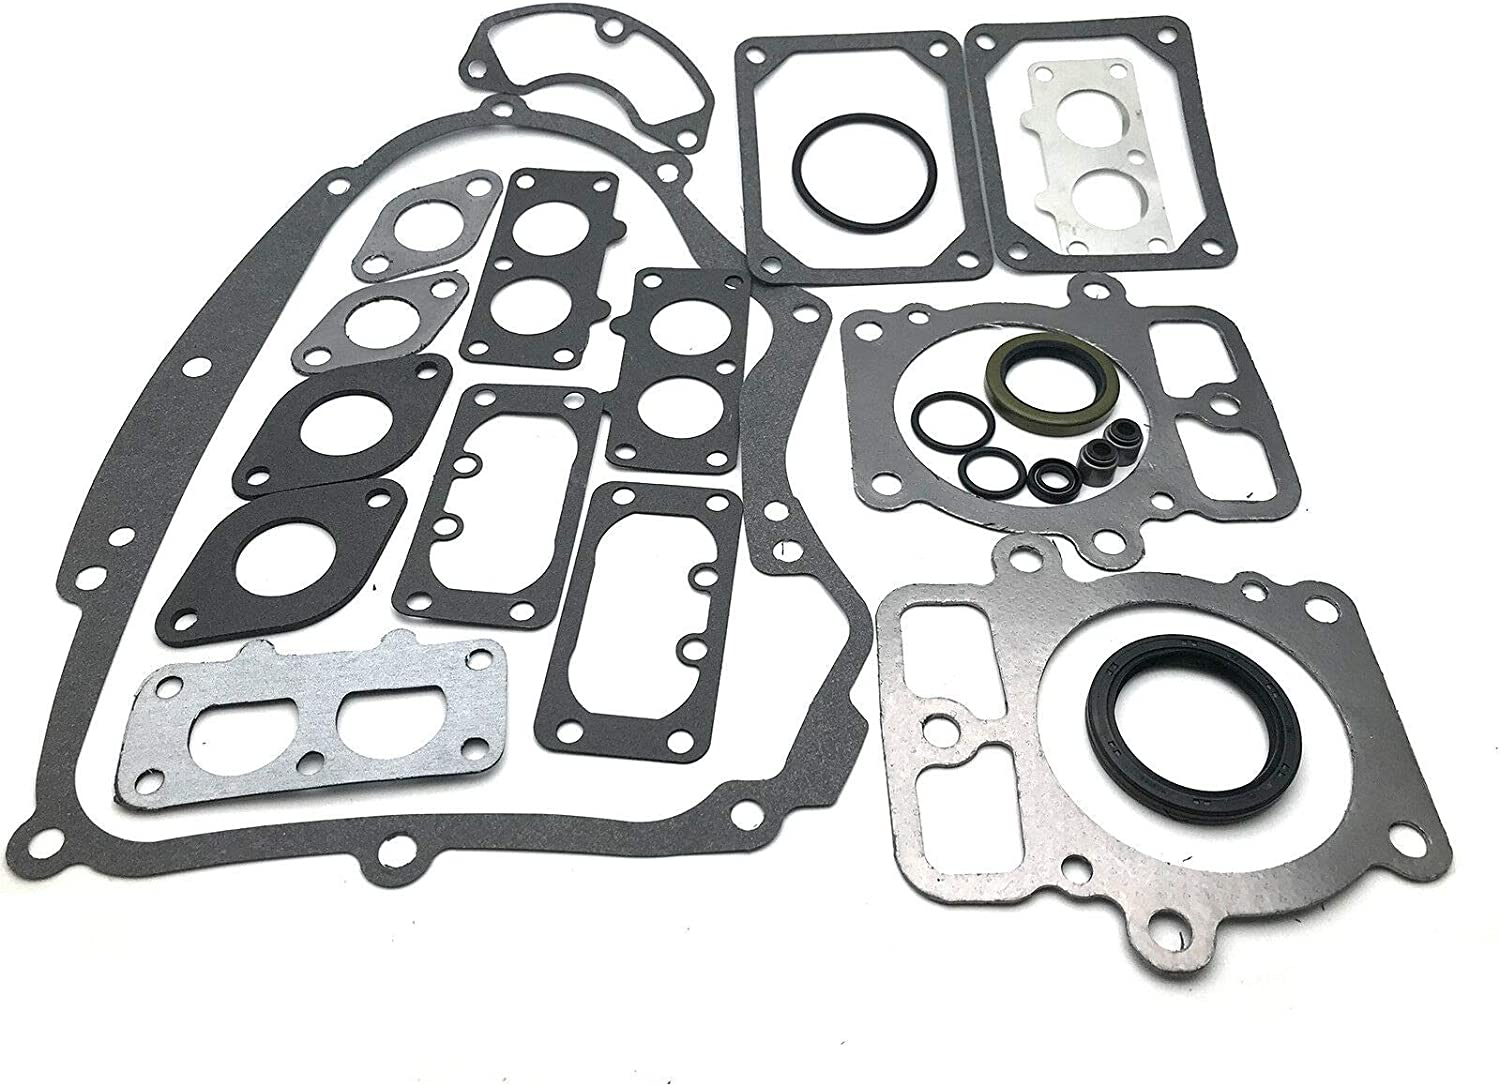 TacPower HQMelectronicsparts Supplies for Briggs /& Stratton Engine Gasket Kit Select 405777 40H777 40G777 407777